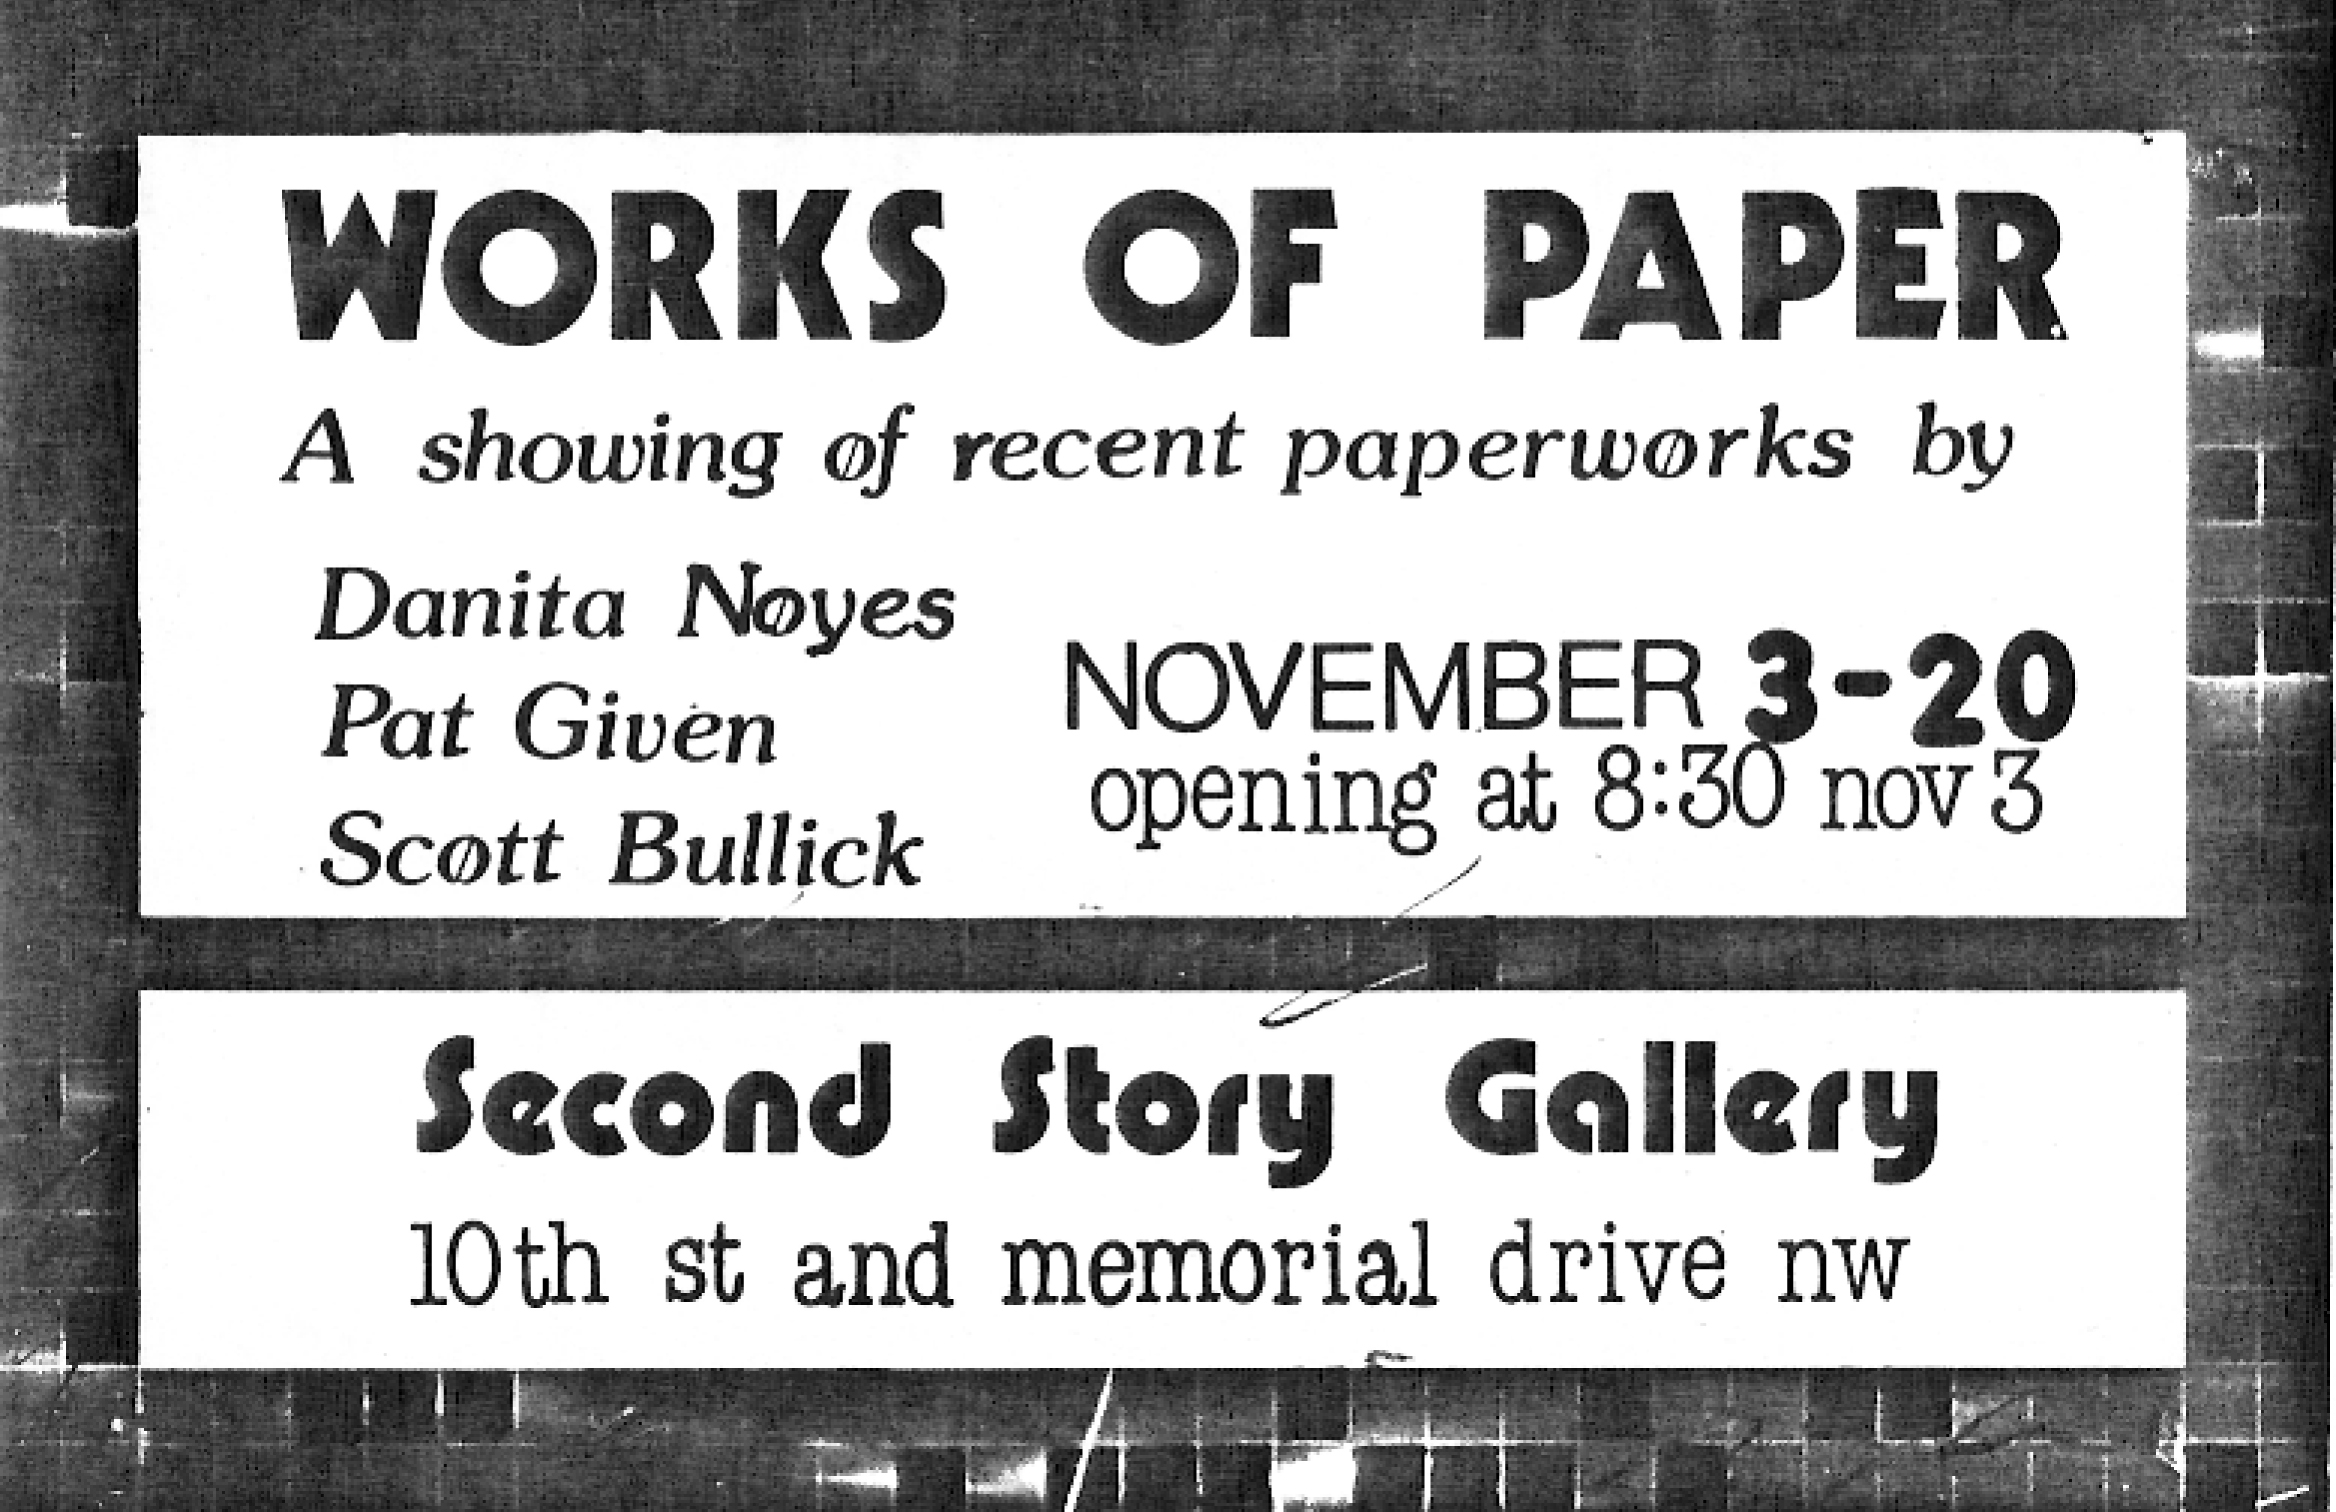 worksofpaper-invite.jpg